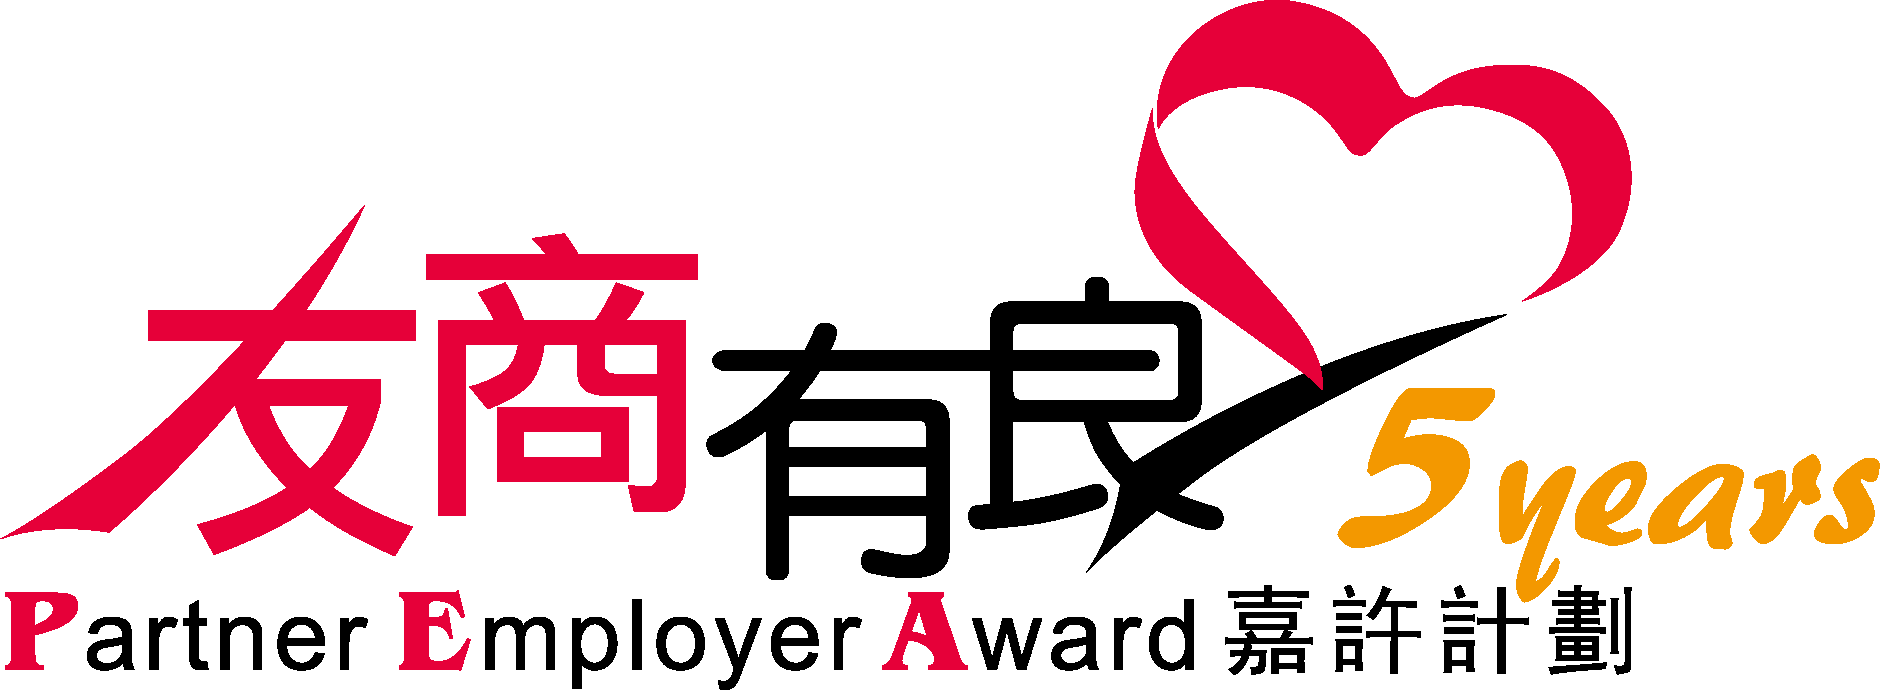 Partner Employer Award 5+